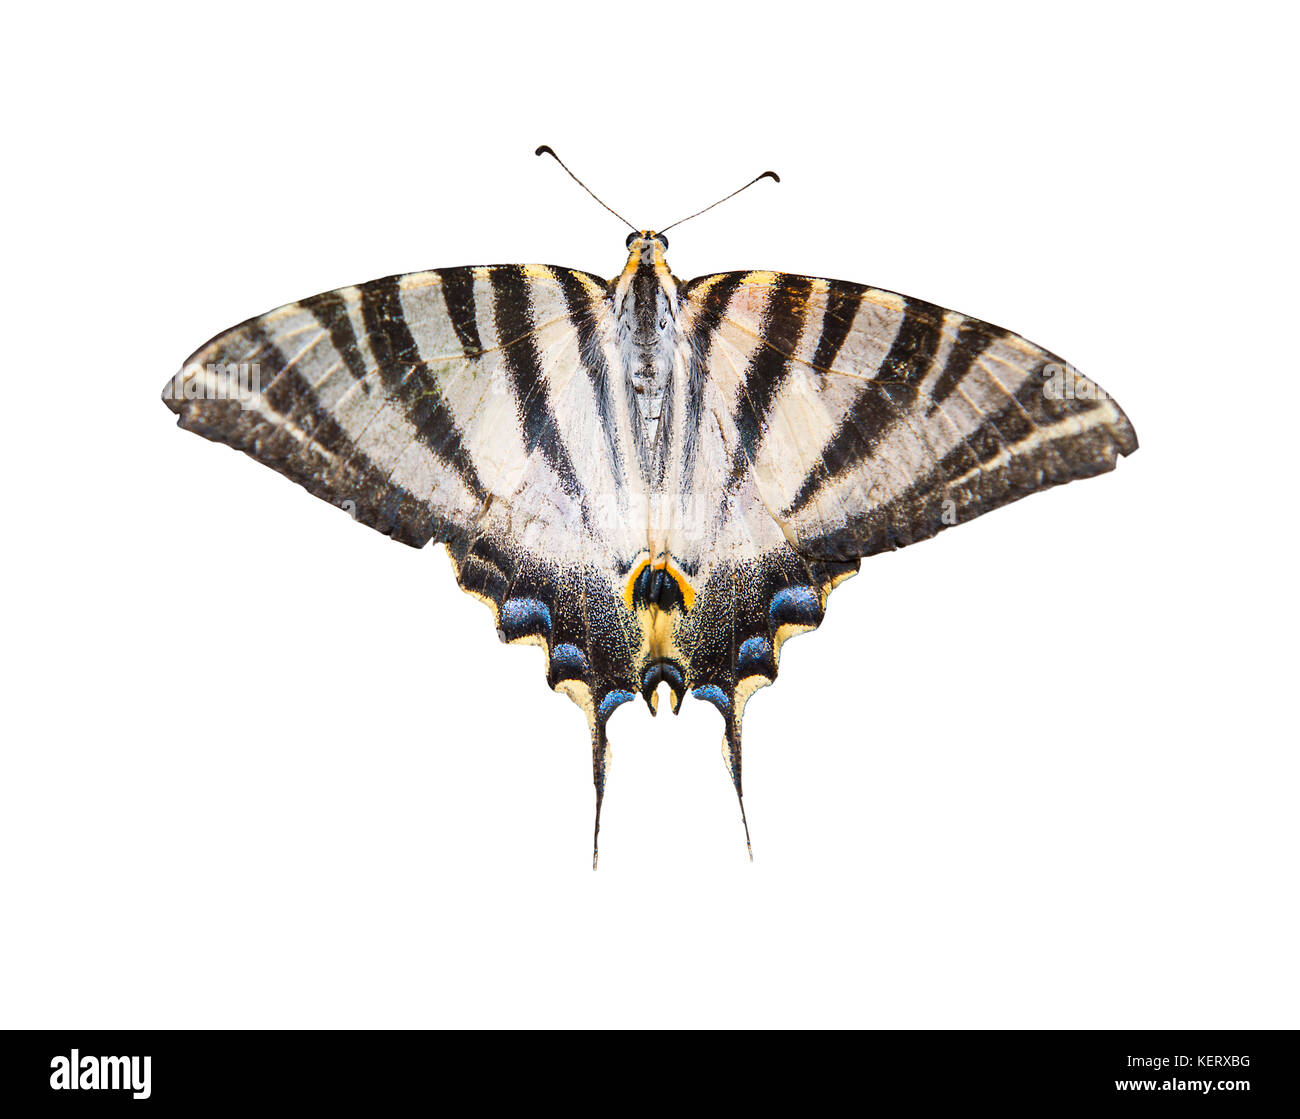 cut out image of a scarce swallowtail butterfly Iphiclides podalirius - Stock Image